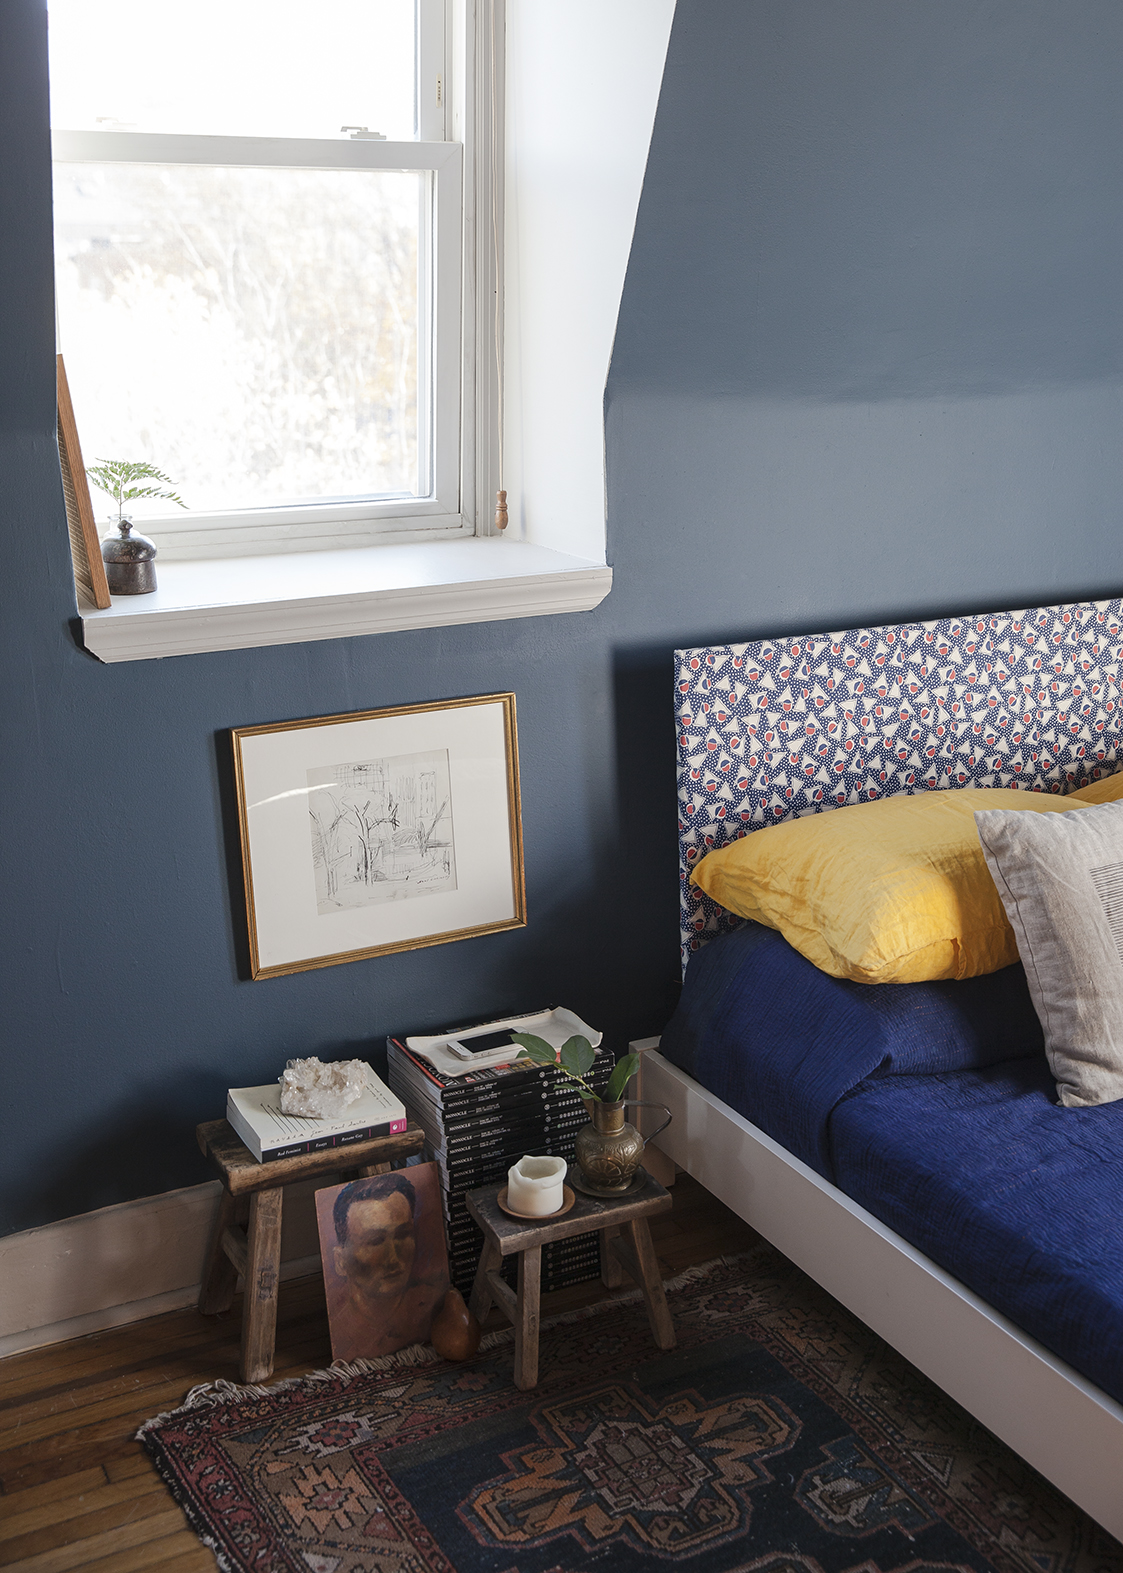 Before & After: A Color-Conscious Rental Upgrade